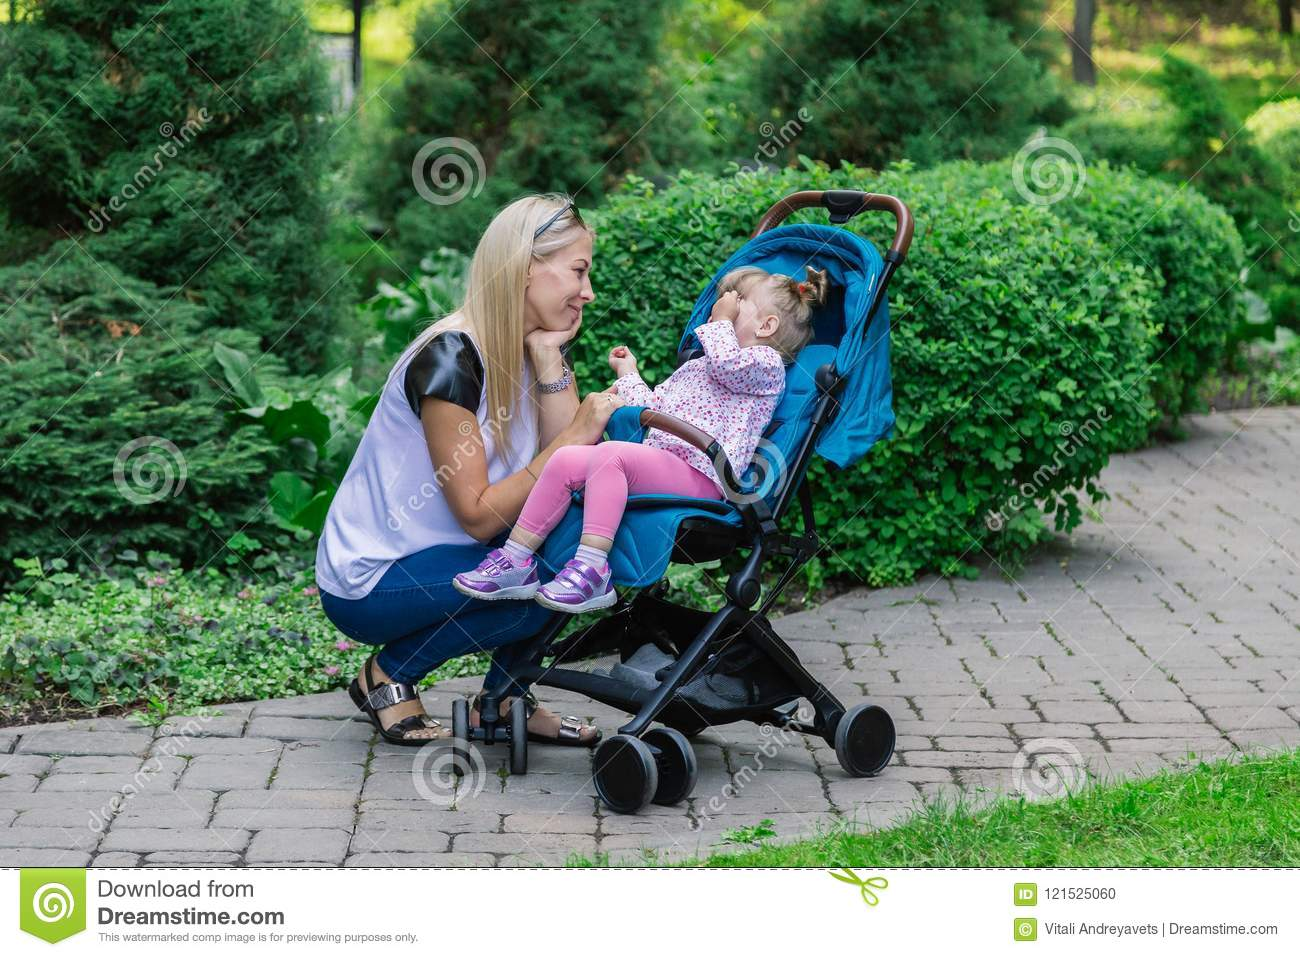 f25ec726dff5 Mother Walking While Pushing A Stroller In The Park Stock Photo ...